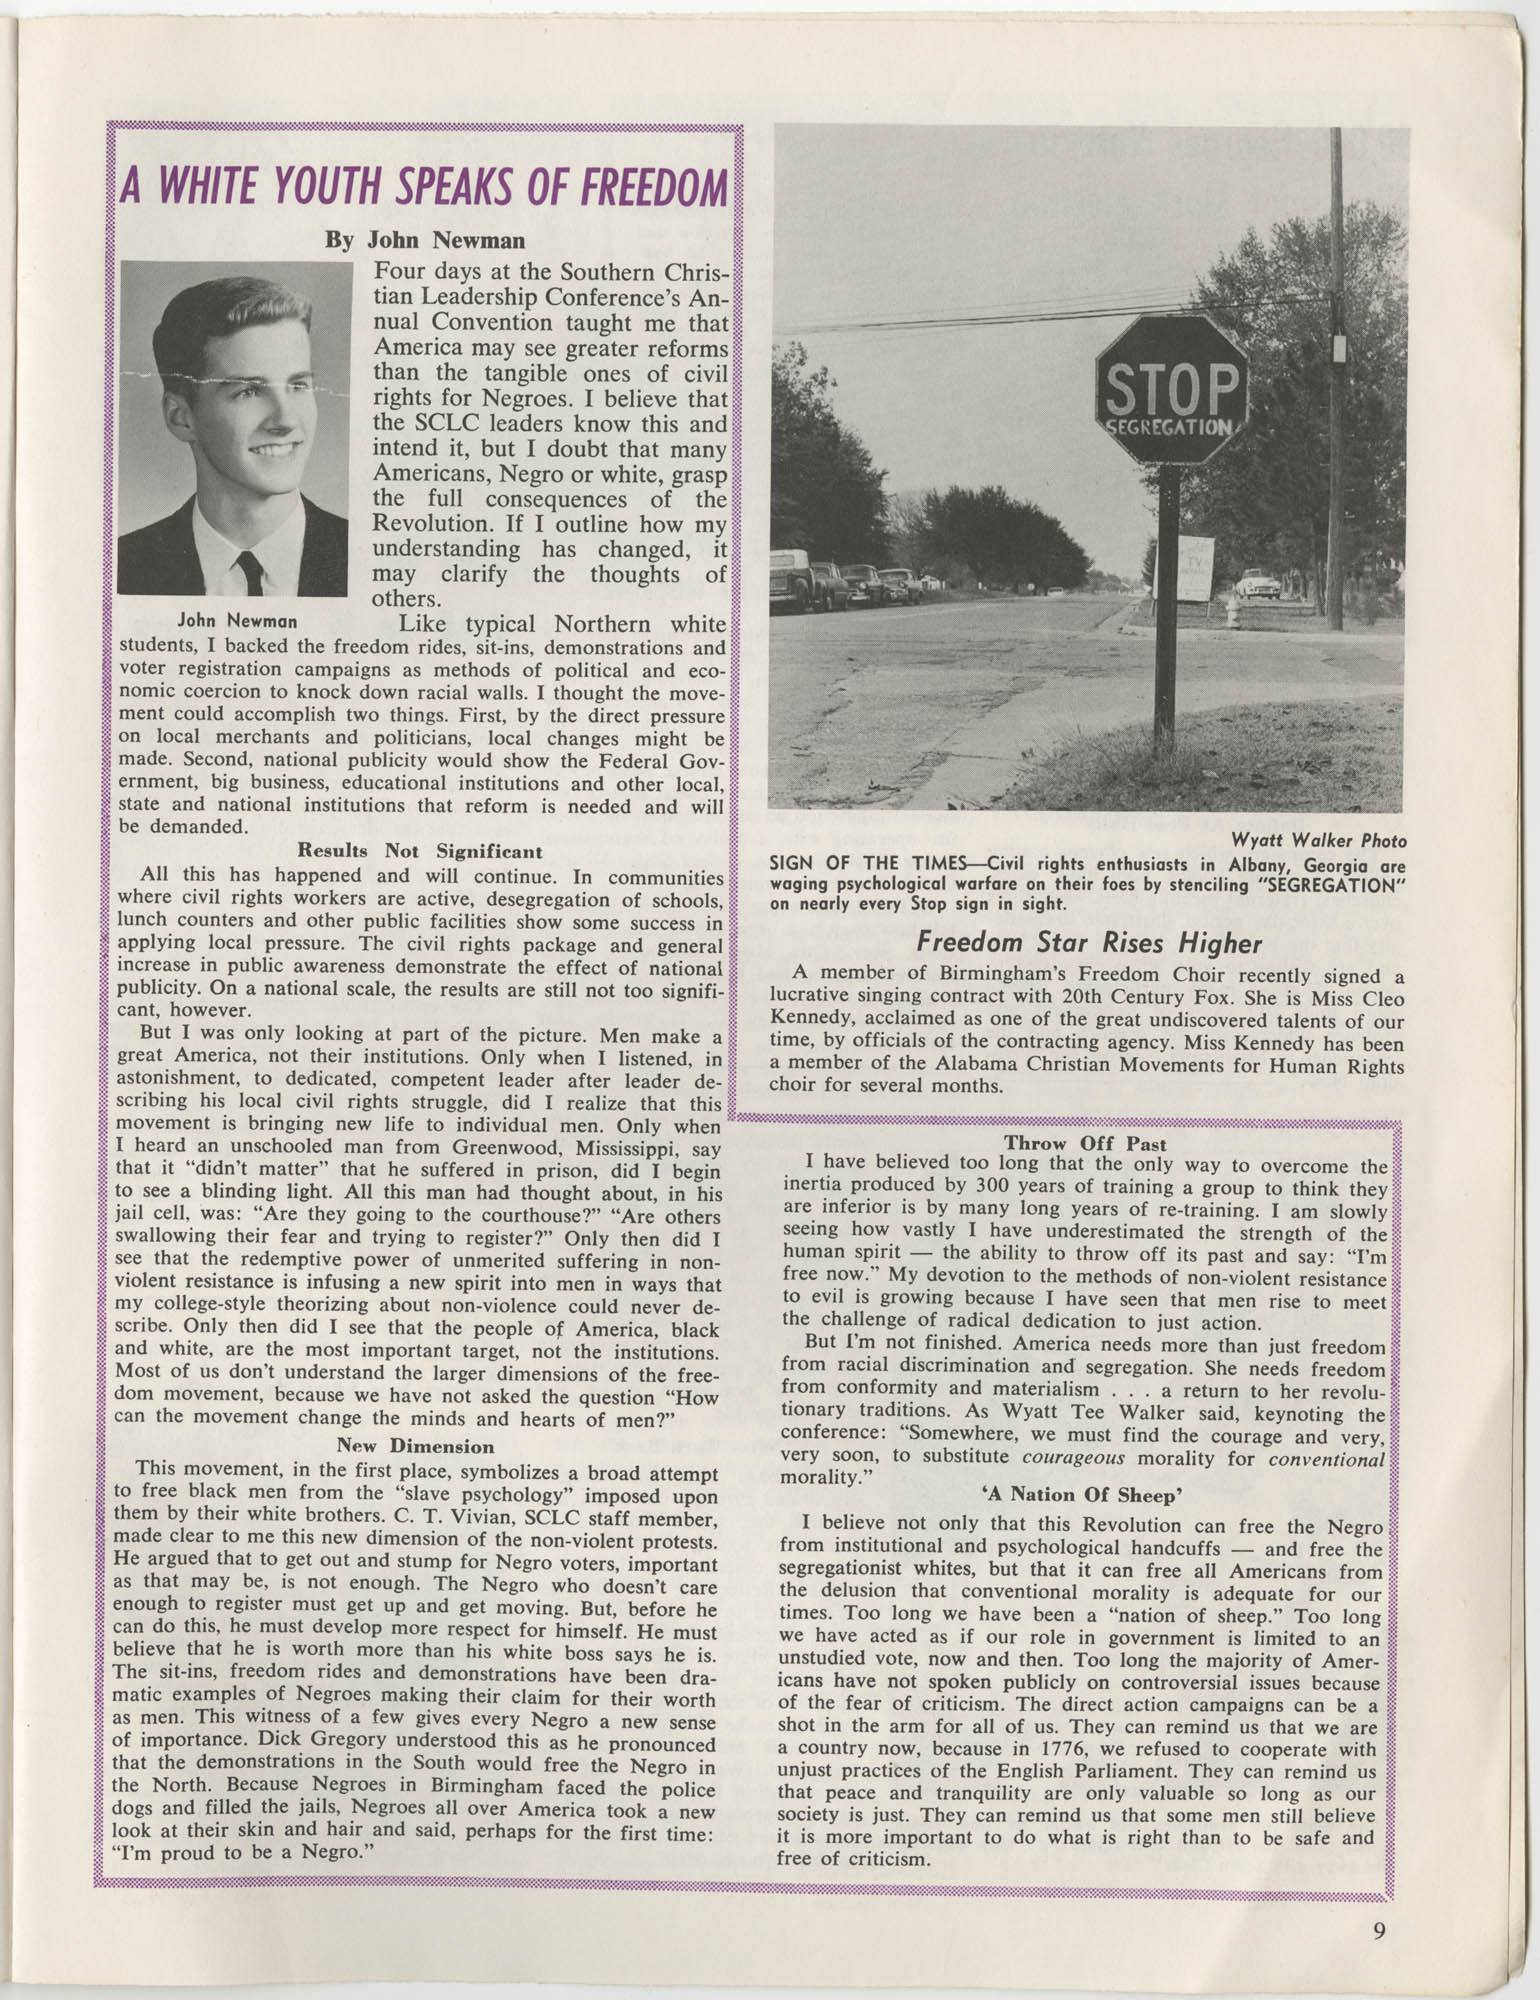 Southern Christian Leadership Conference Newsletter, Volume 2, Number 3, November-December, 1963, Page 9